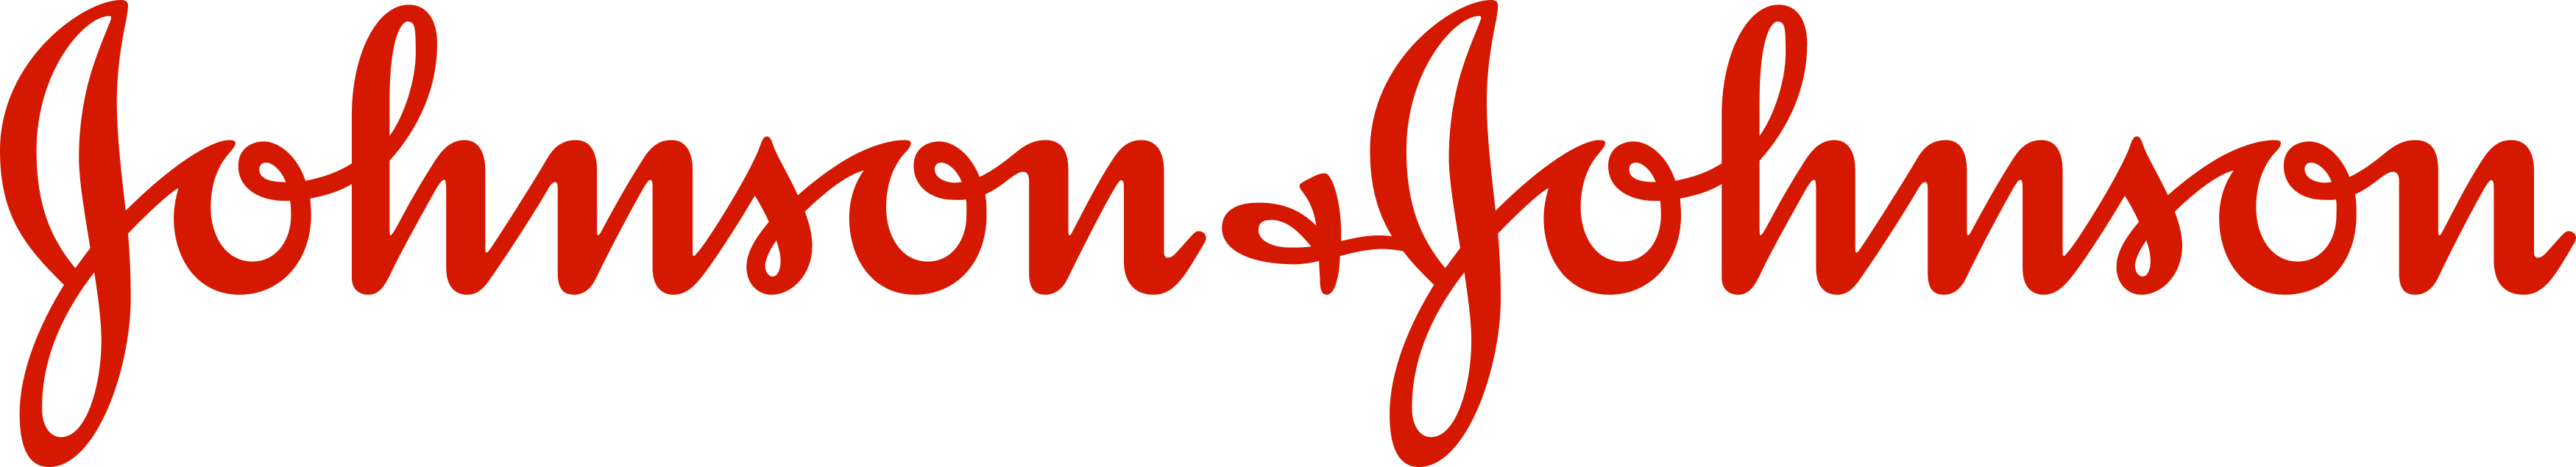 Johnson & Johnson Logo.